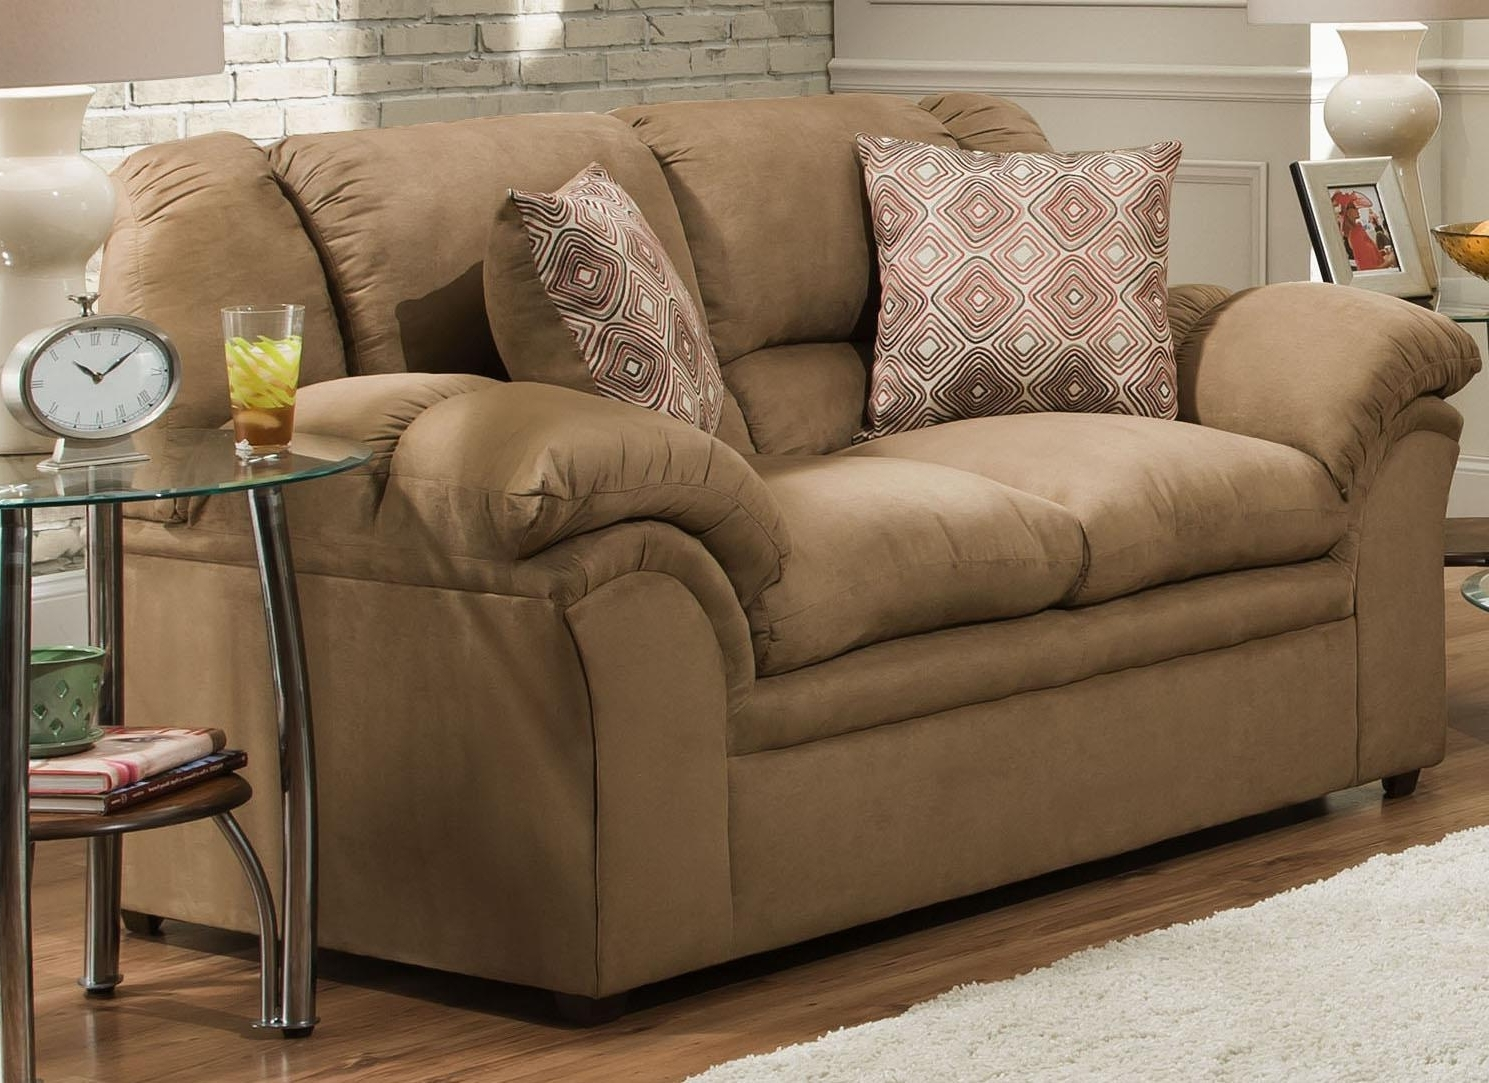 Fashionable United Furniture Industries 1720 Love Seat (View 3 of 15)